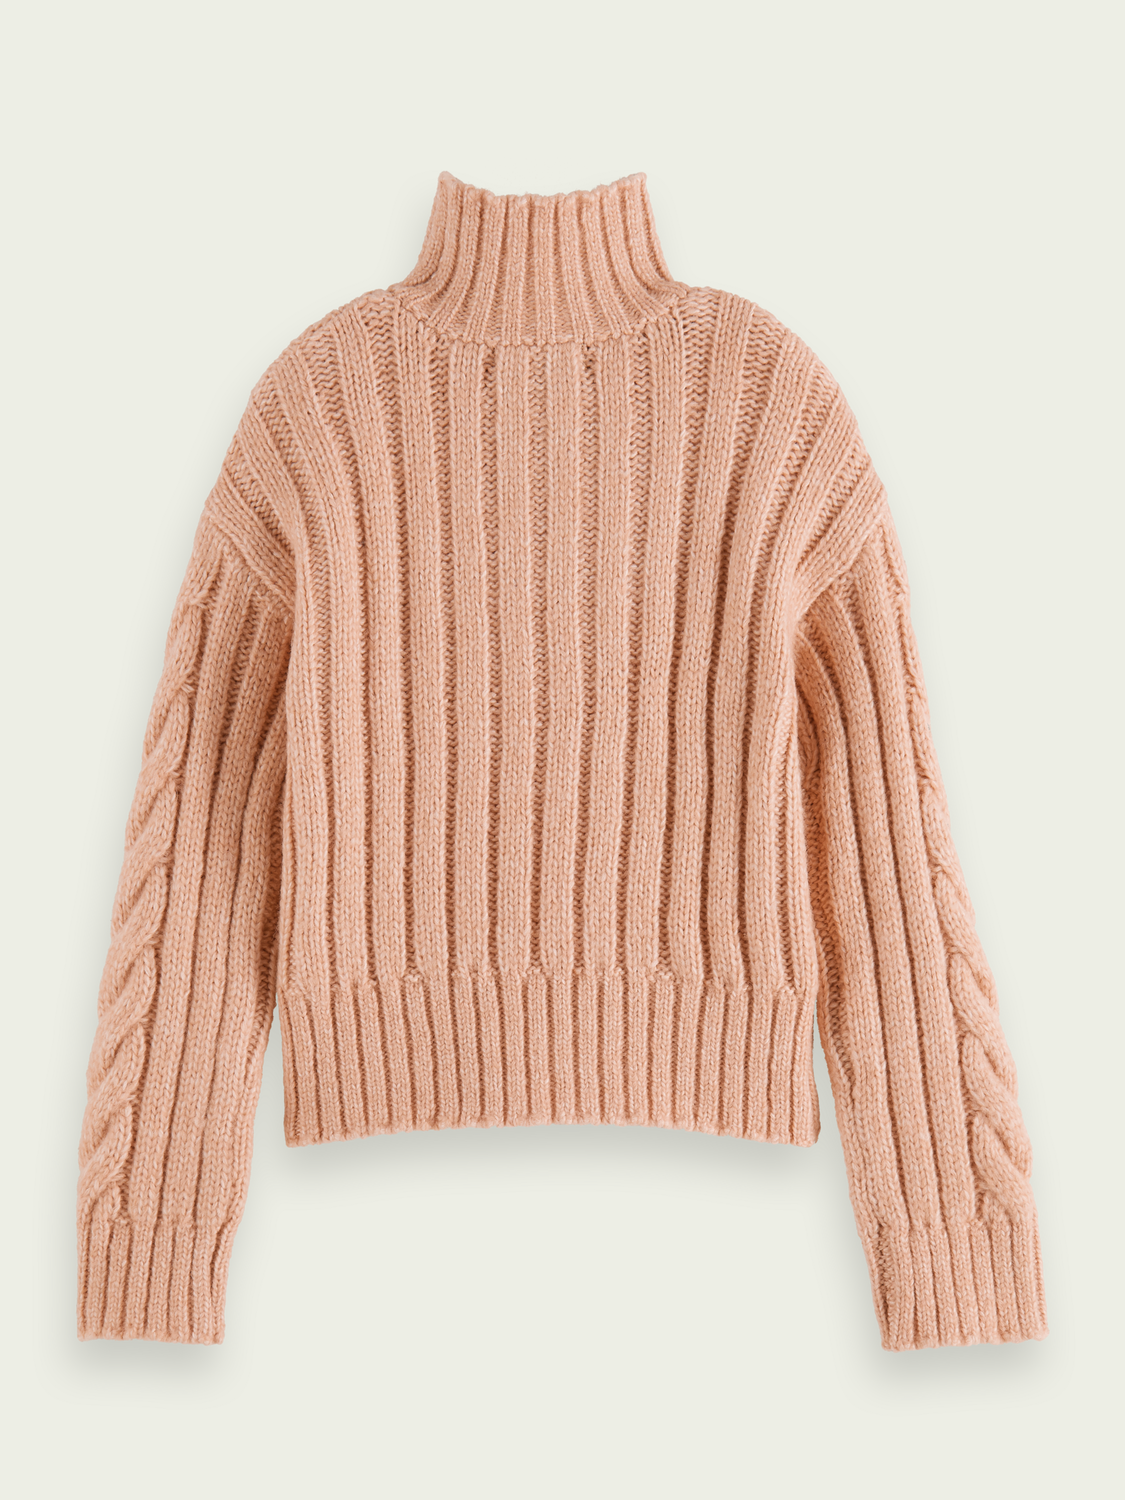 Kids Half-zip cropped cable knit